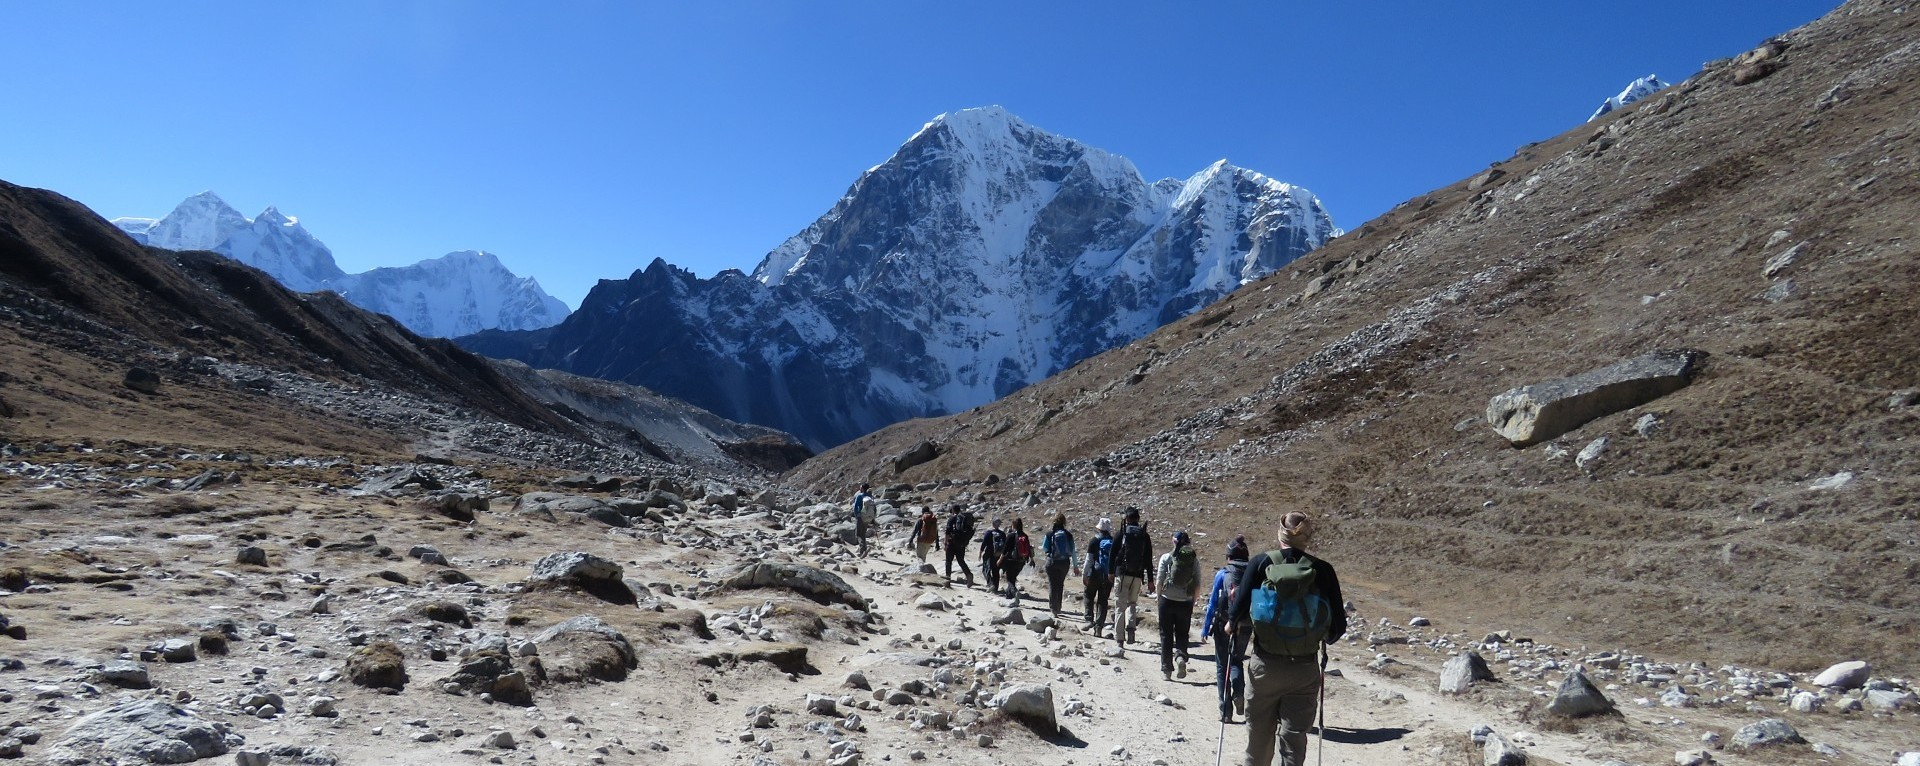 Descending from Lobuche to Thugla